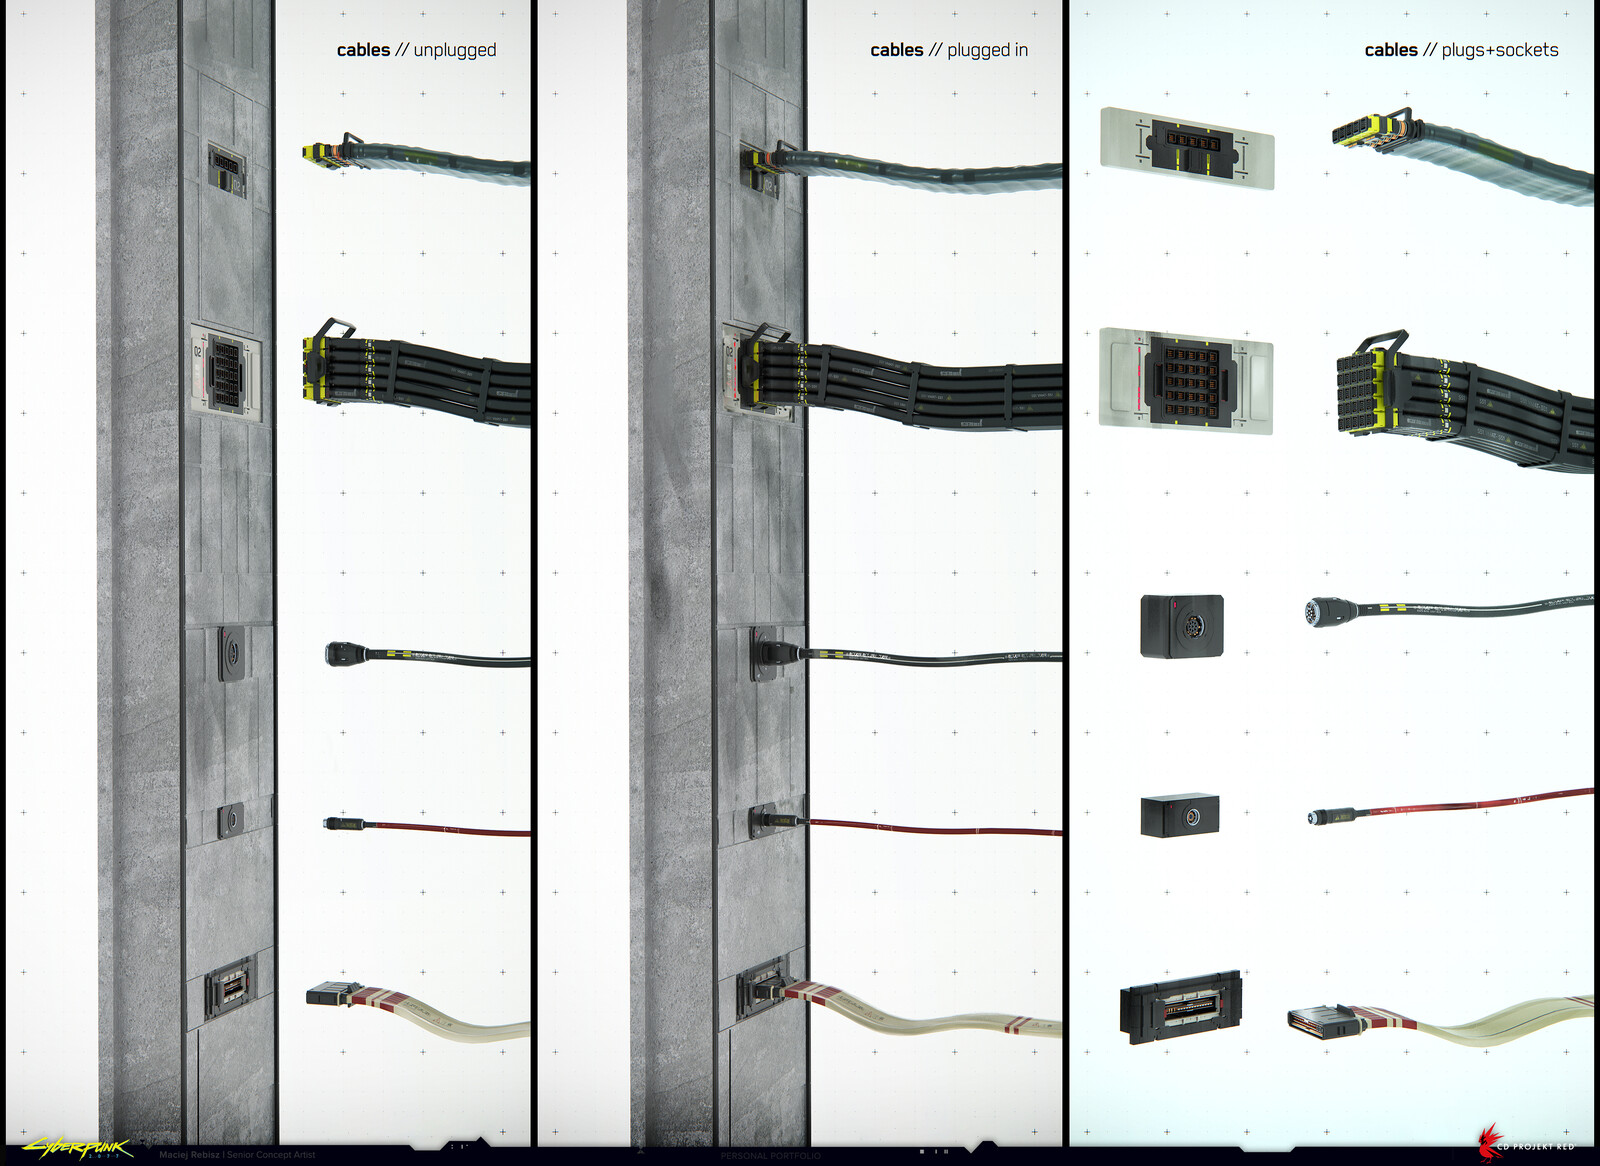 Cables, sockets, plugs